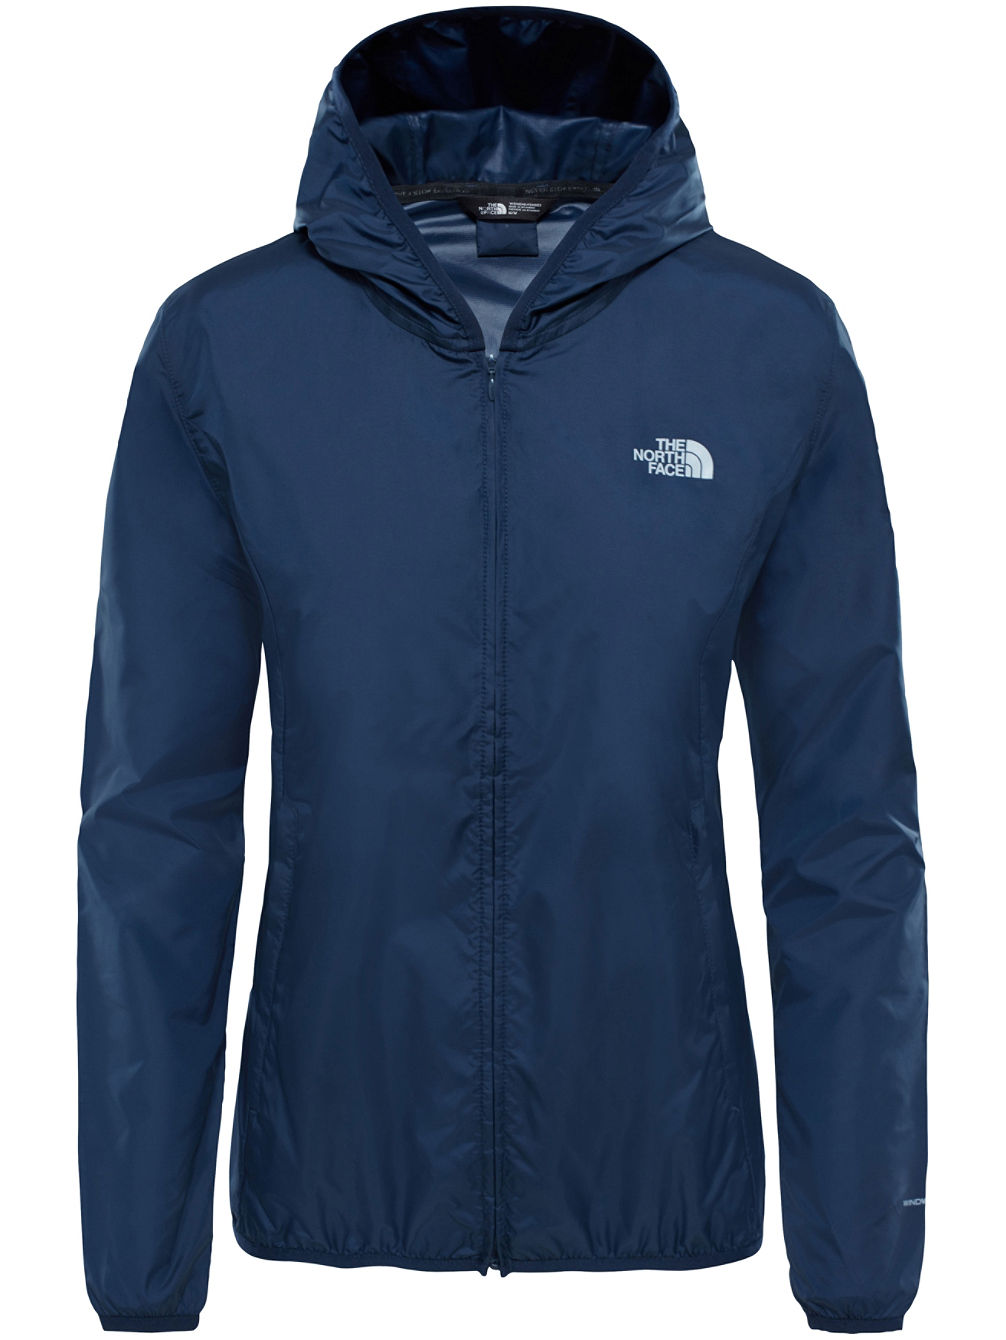 Tanken Windwall Windbreaker